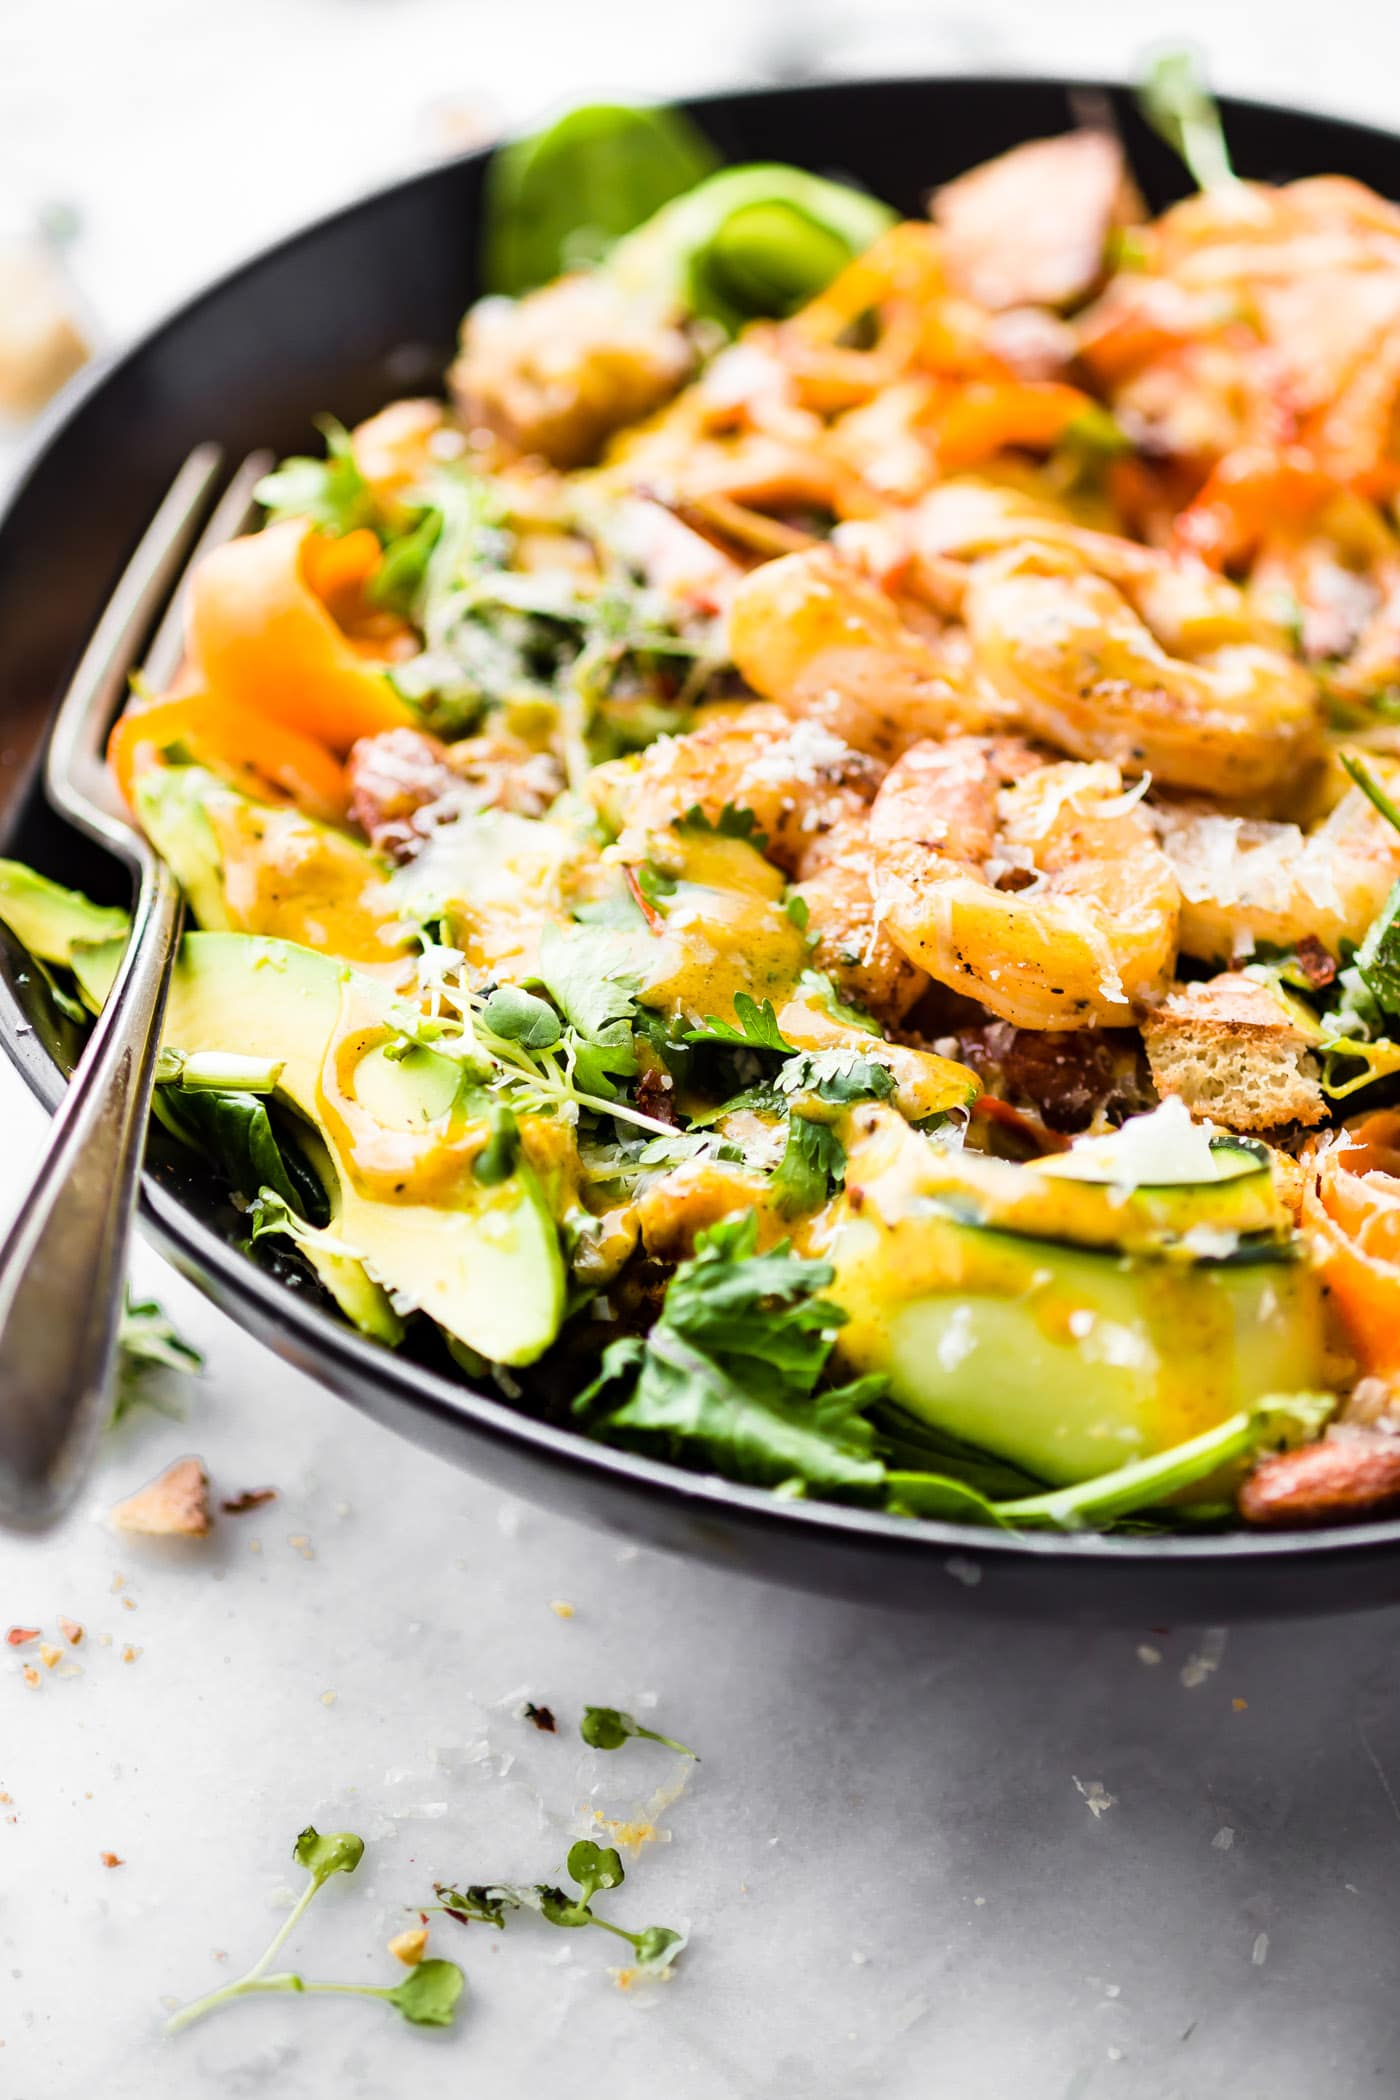 Spicy shrimpCaesar Spinach salad! A quick light meal for lunch or dinner! Spicy shrimp & homemade Caesar dressing make this aflavorfulProtein-RichSalad!